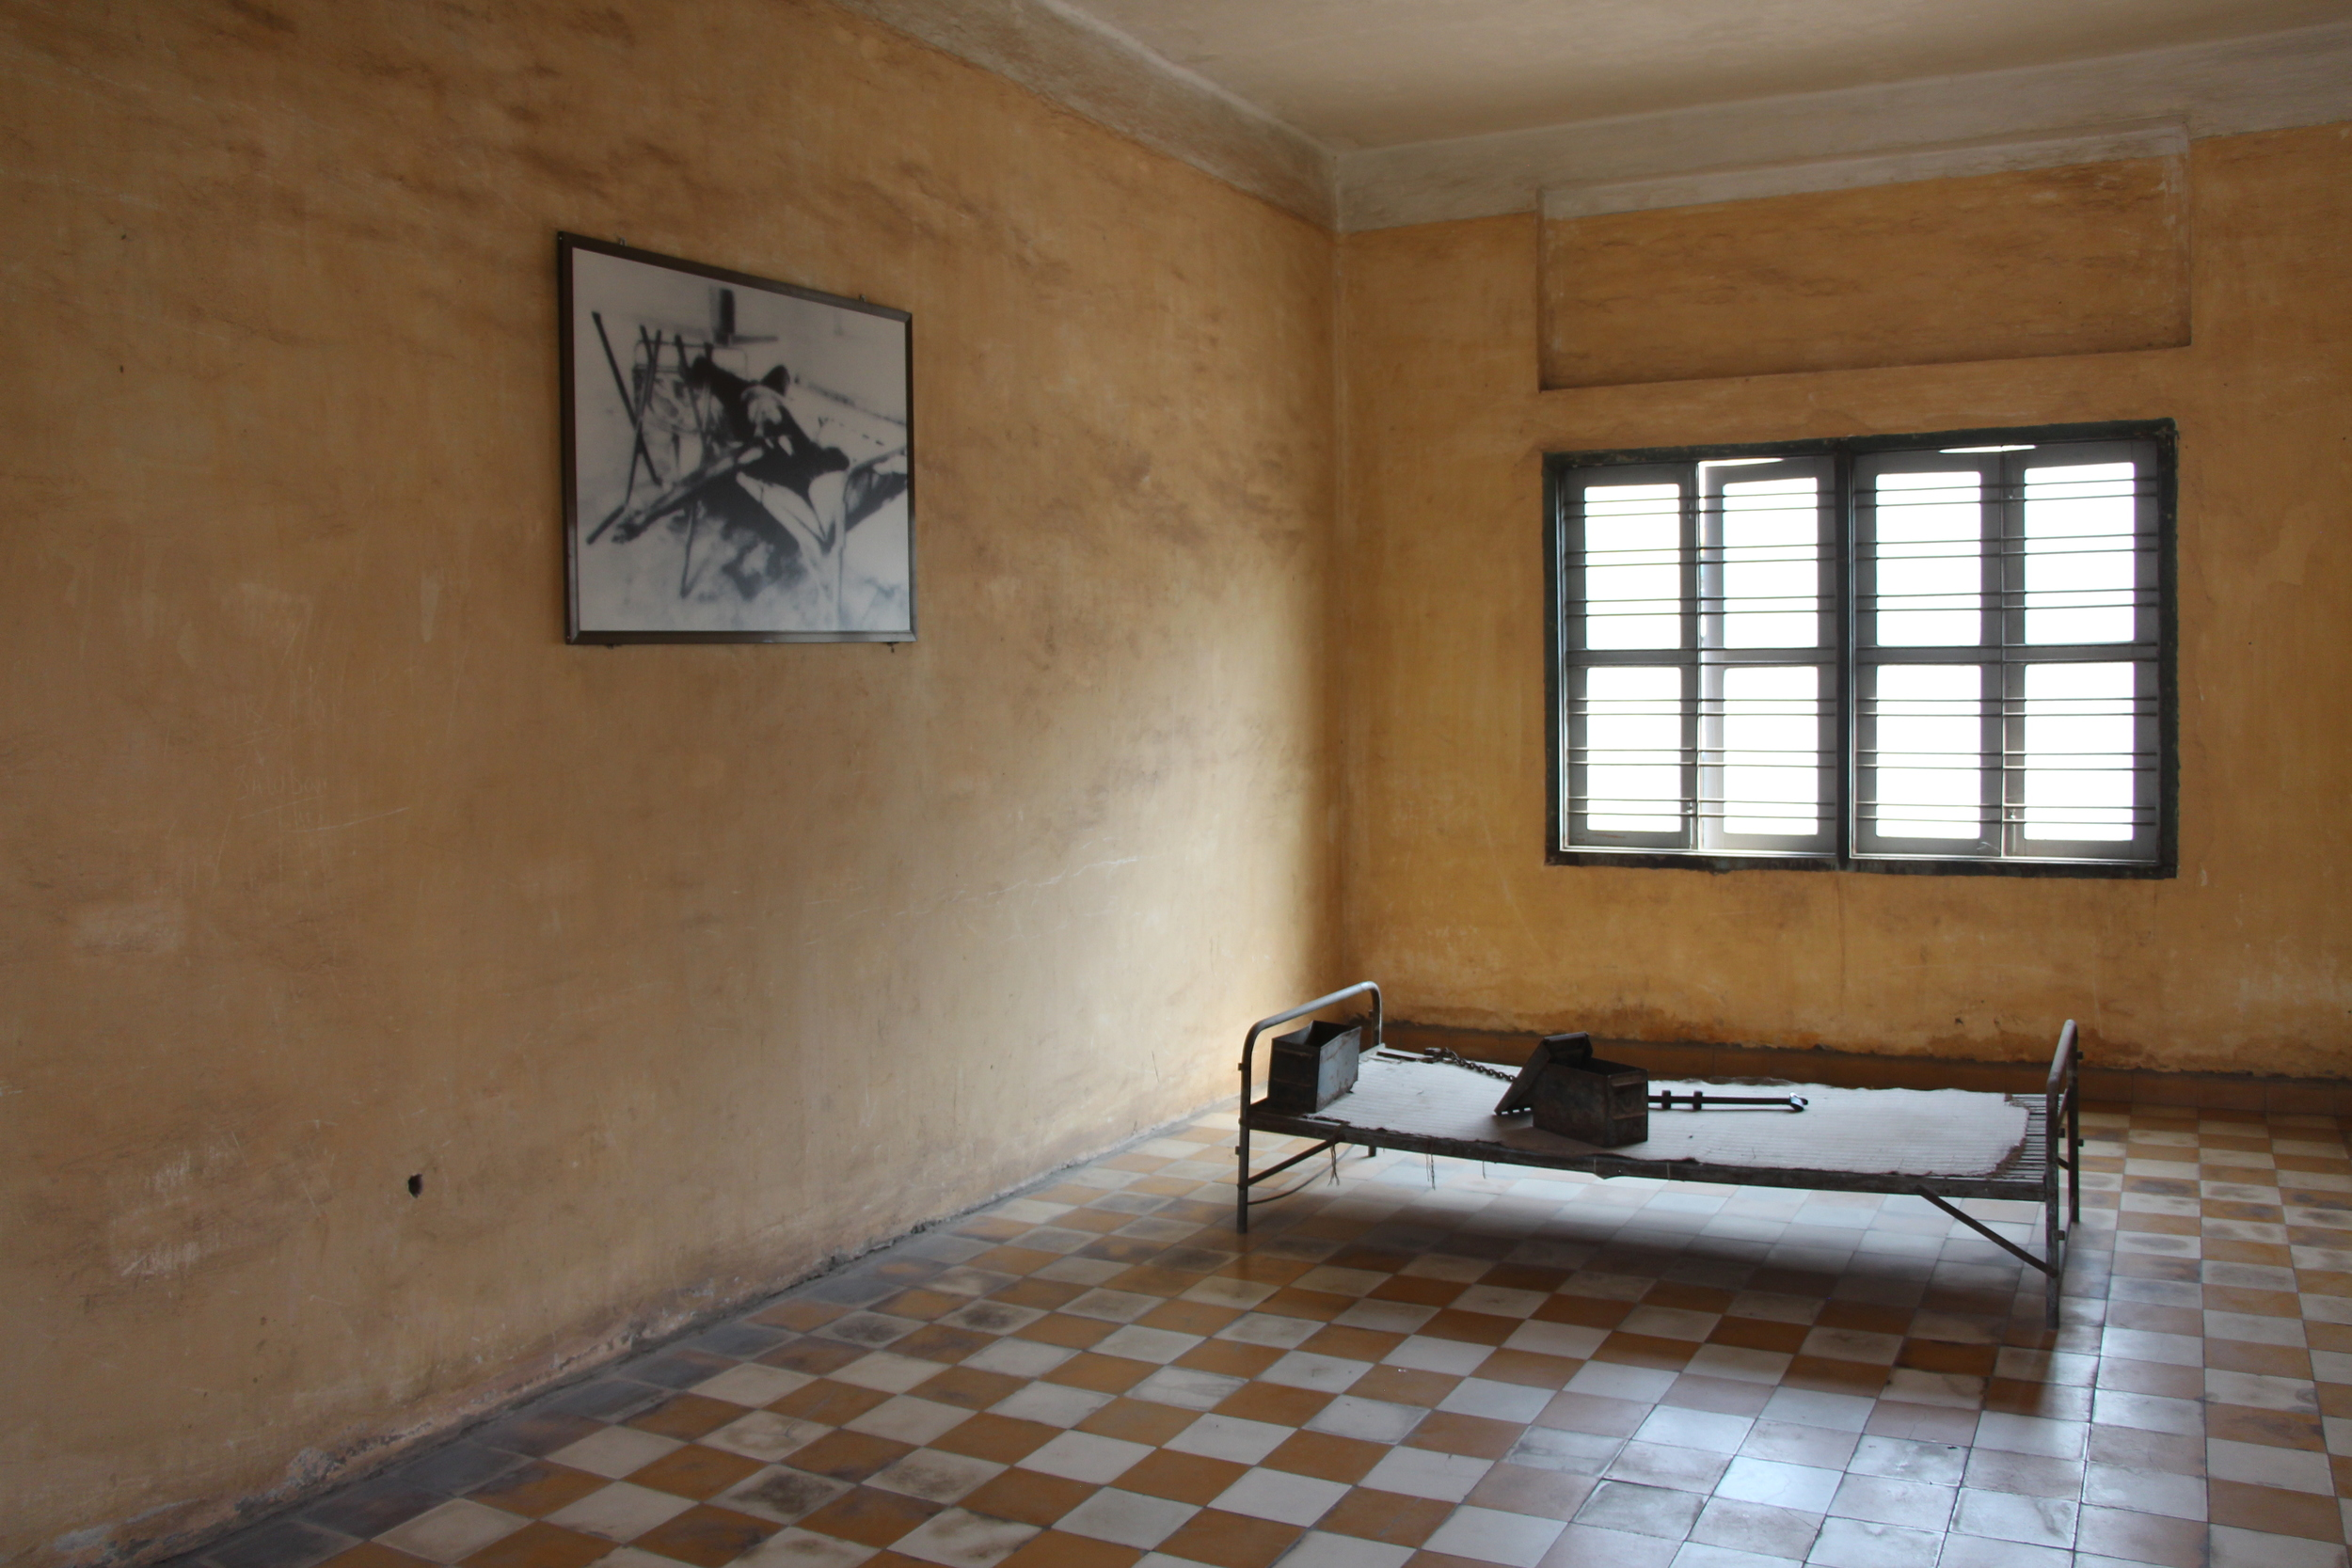 Large rooms like this were used to harbor high-ranking officials before they were tortured and killed. Leg shackles and a torture device are visible on the bed.